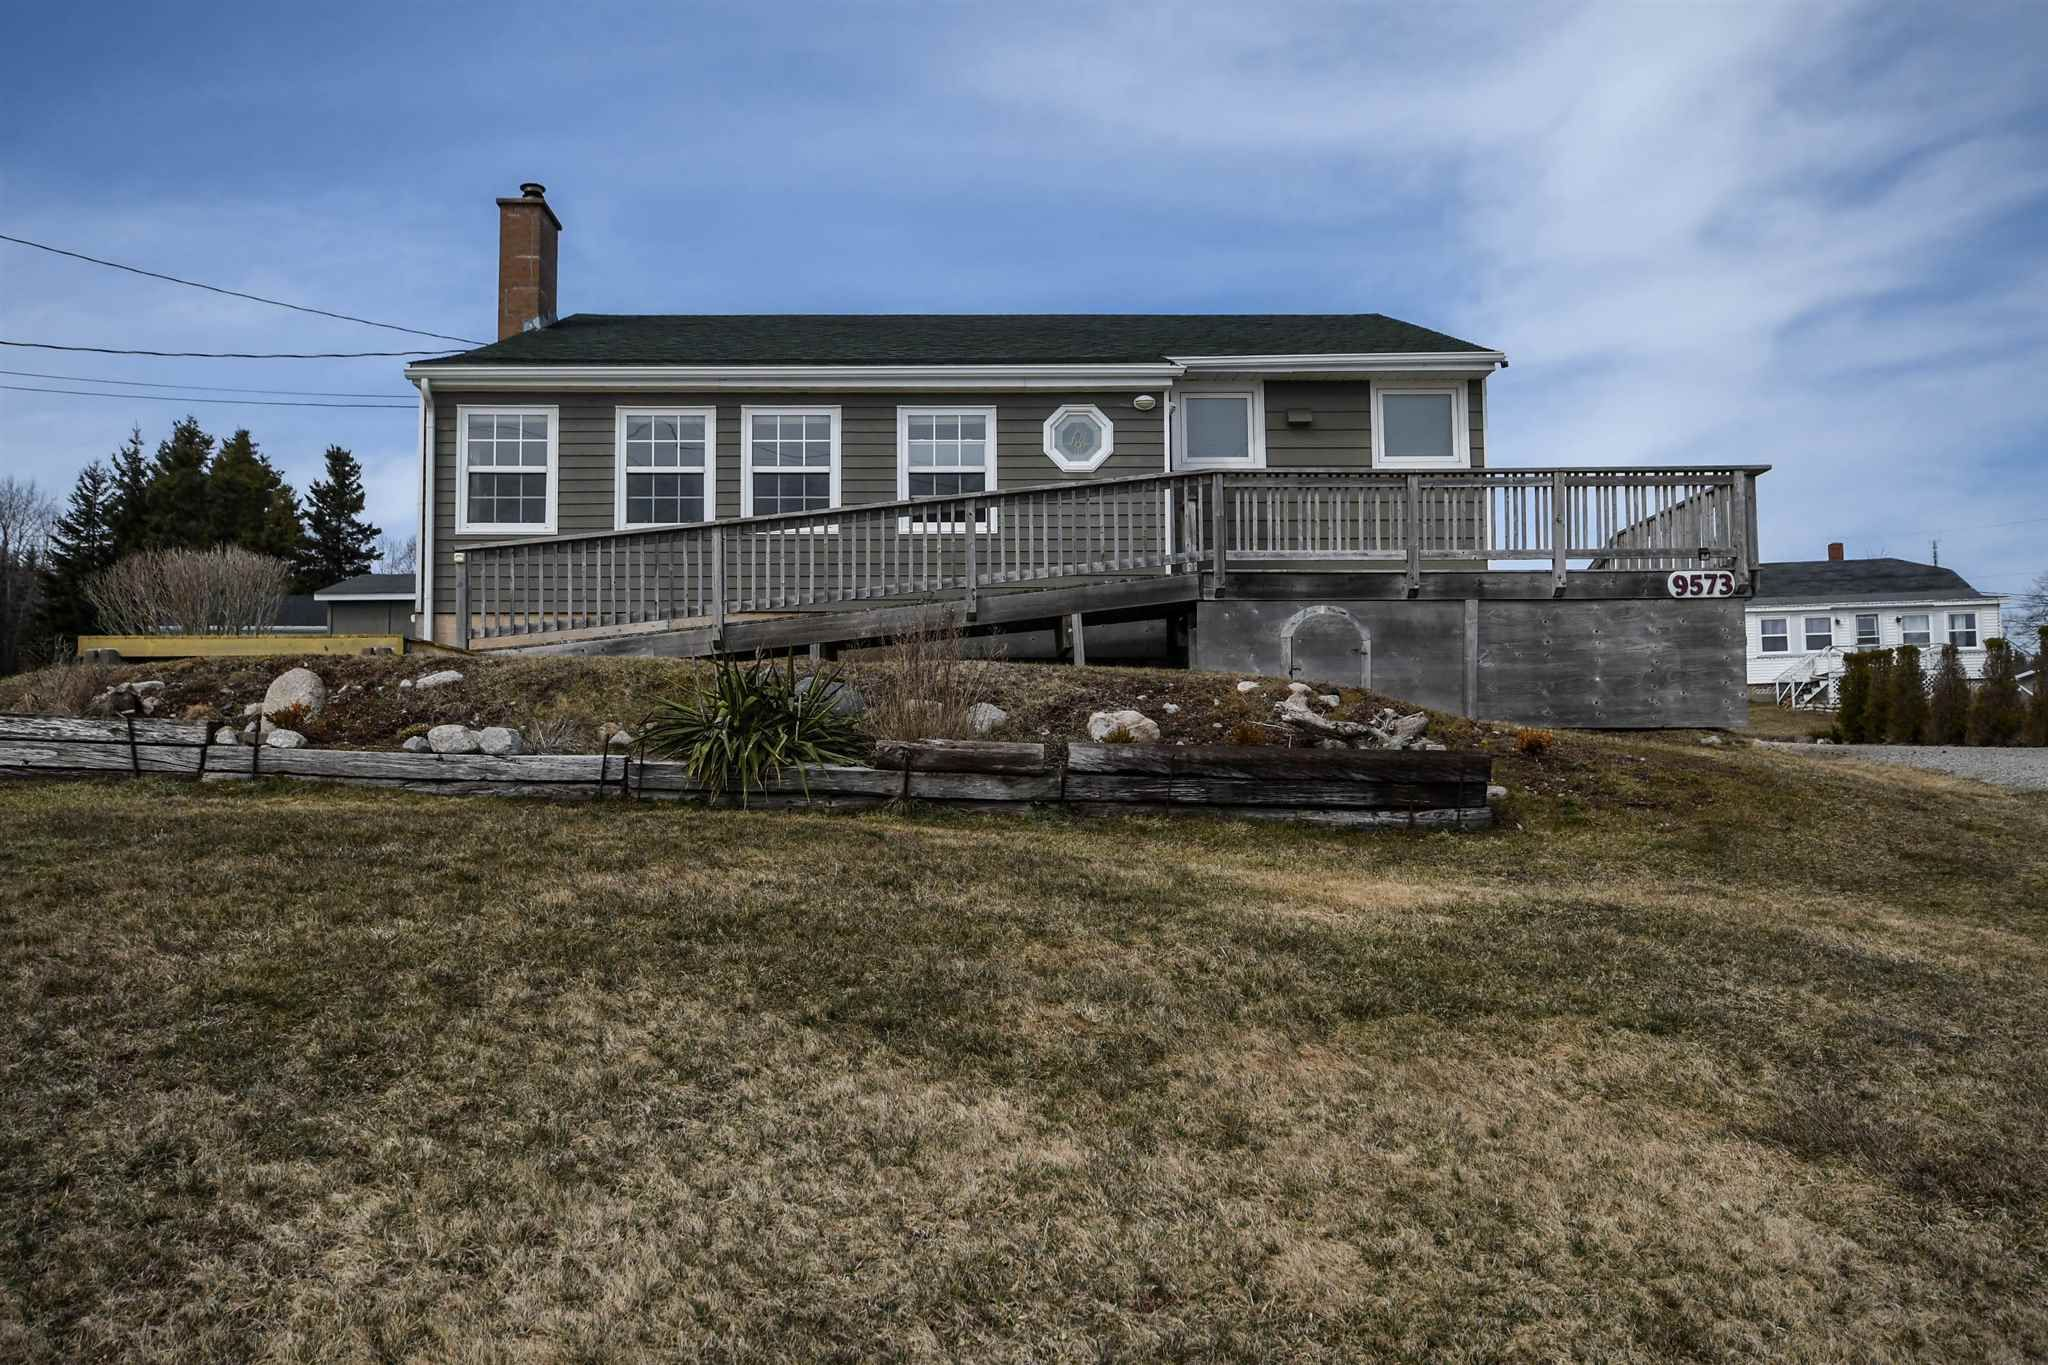 Main Photo: 9573 St. Margarets Bay Road in Queensland: 40-Timberlea, Prospect, St. Margaret`S Bay Residential for sale (Halifax-Dartmouth)  : MLS®# 202106416